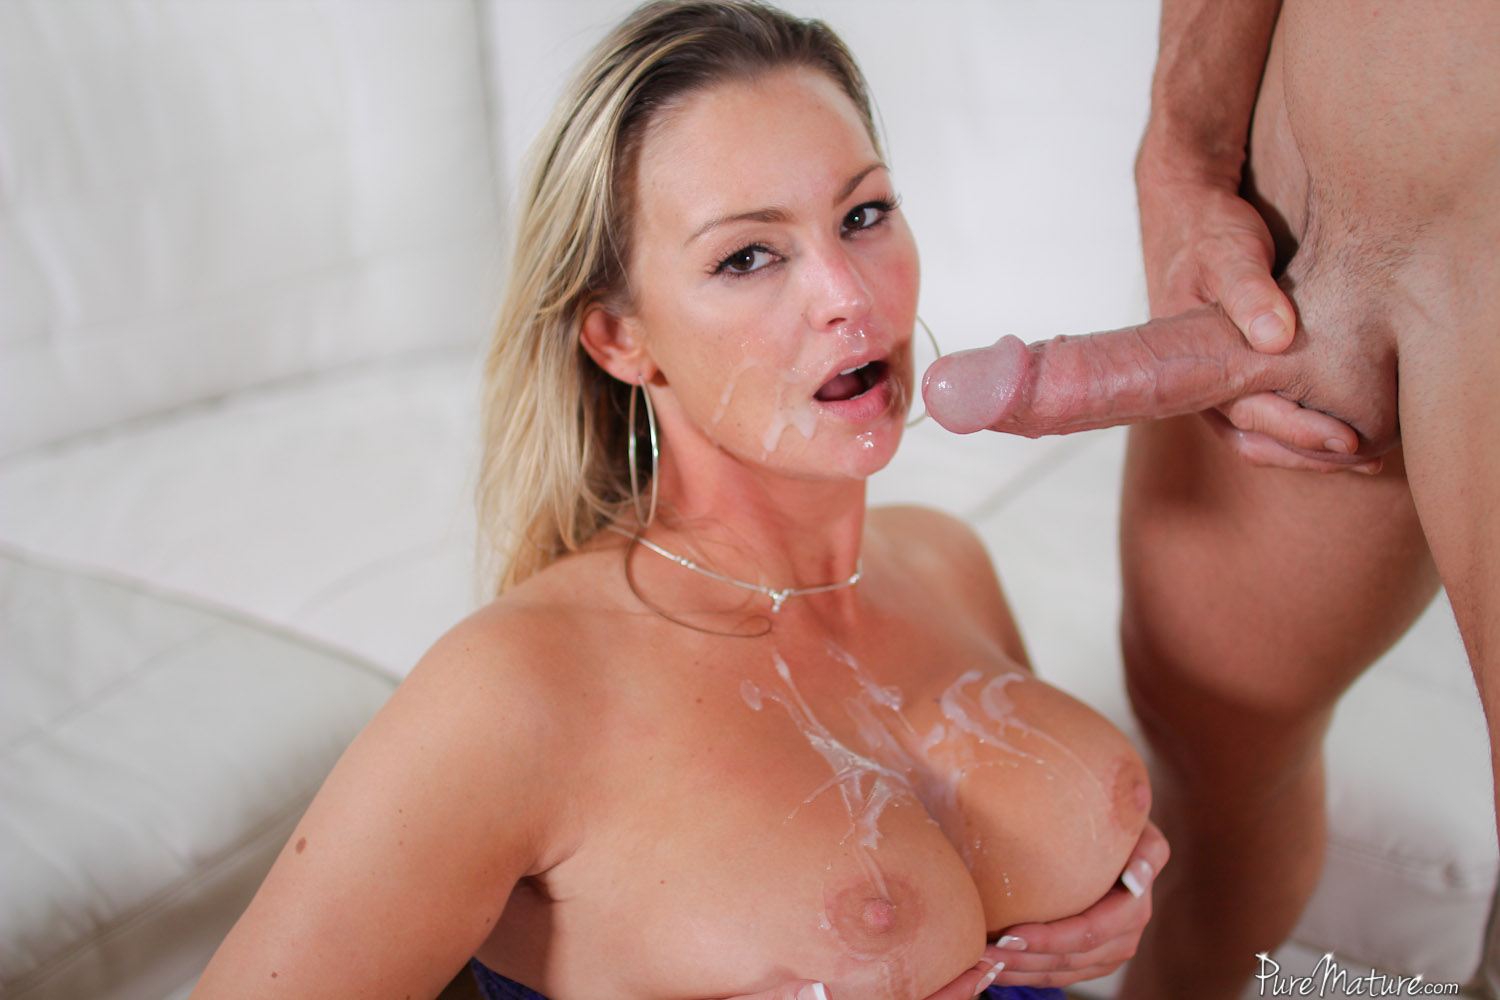 Best big tits matures pics delirium, opinion